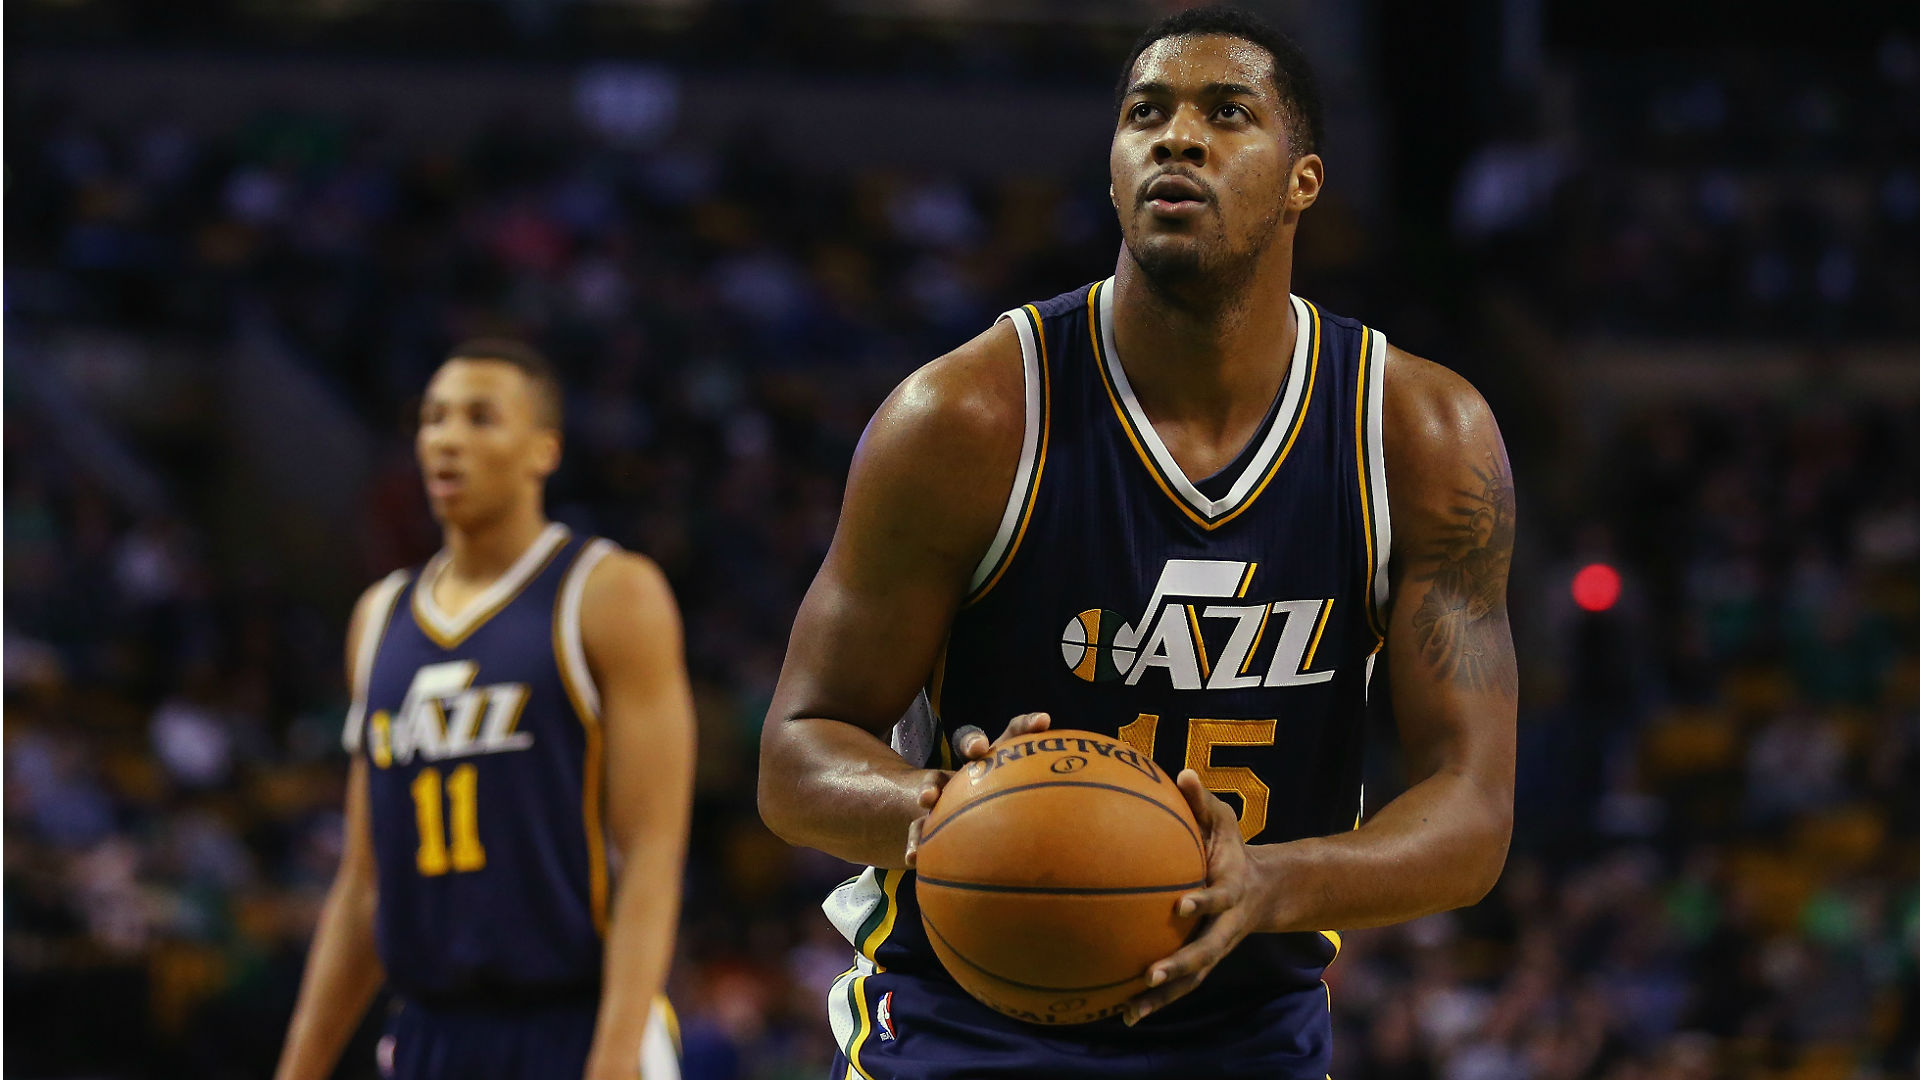 NBA free agency rumors: Derrick Favors meeting with Jazz, wants to re-sign